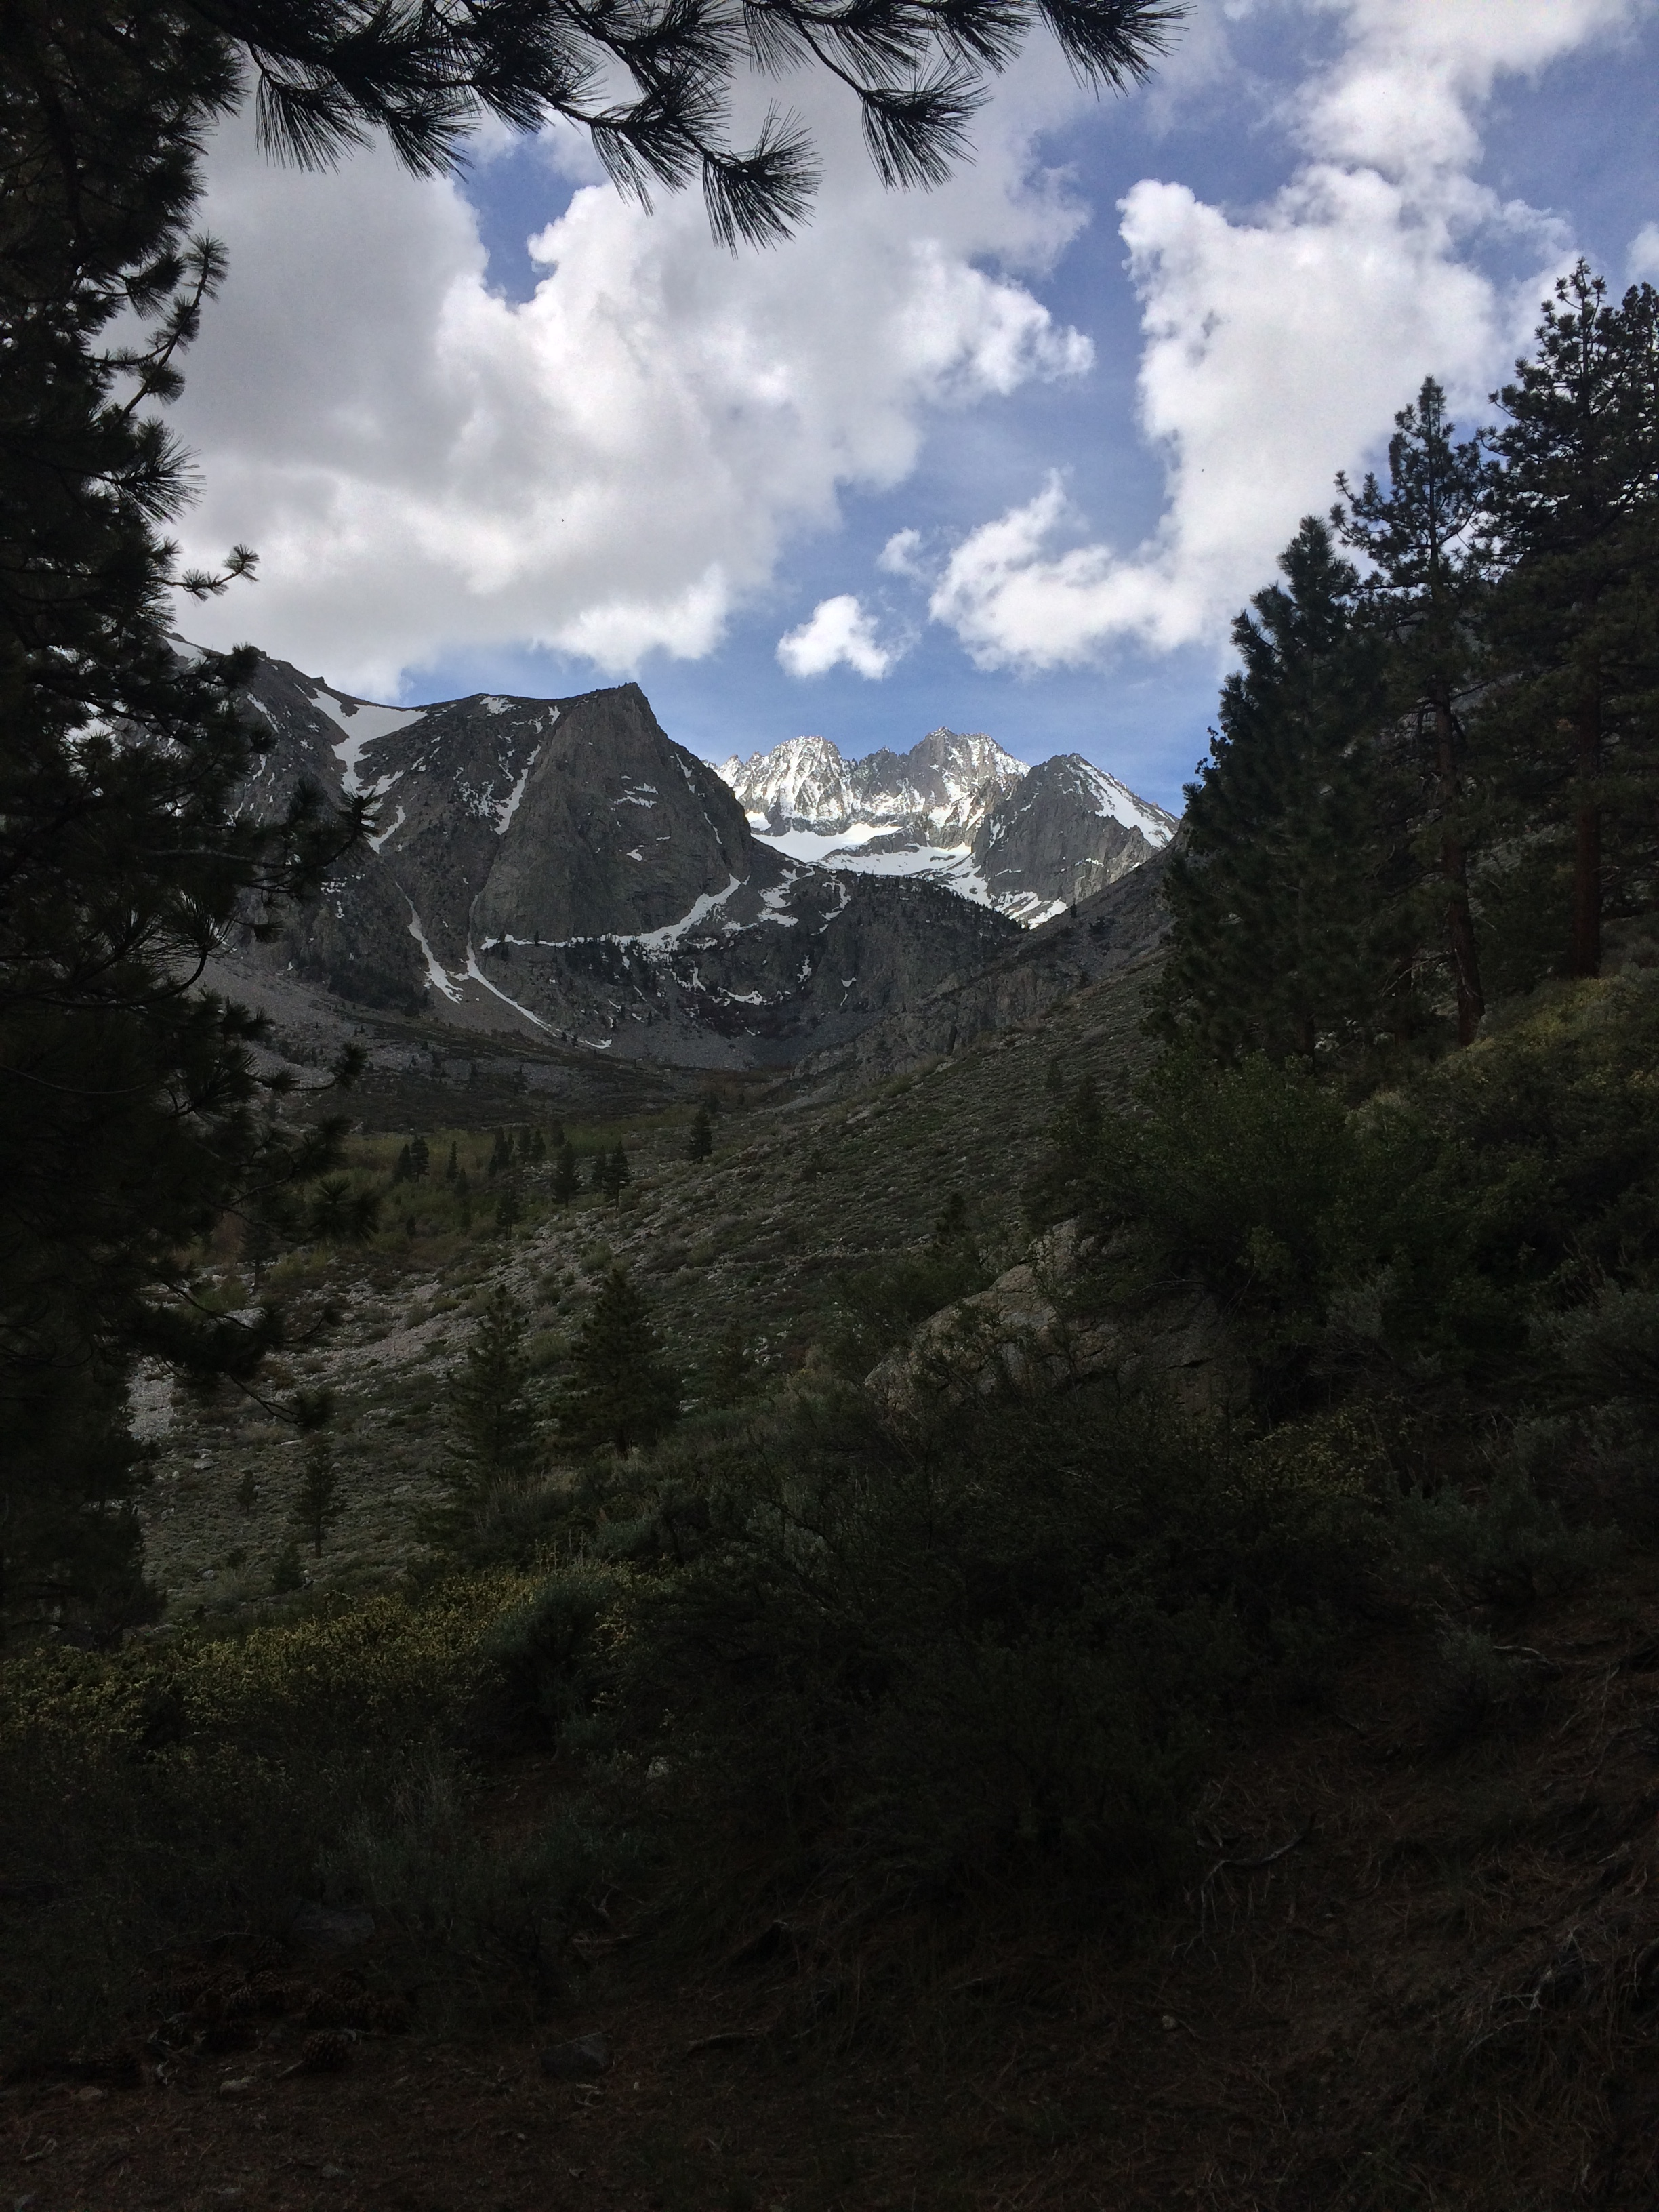 From the beginning, the North Fork trail of Big Pine Creek provides stunning views.